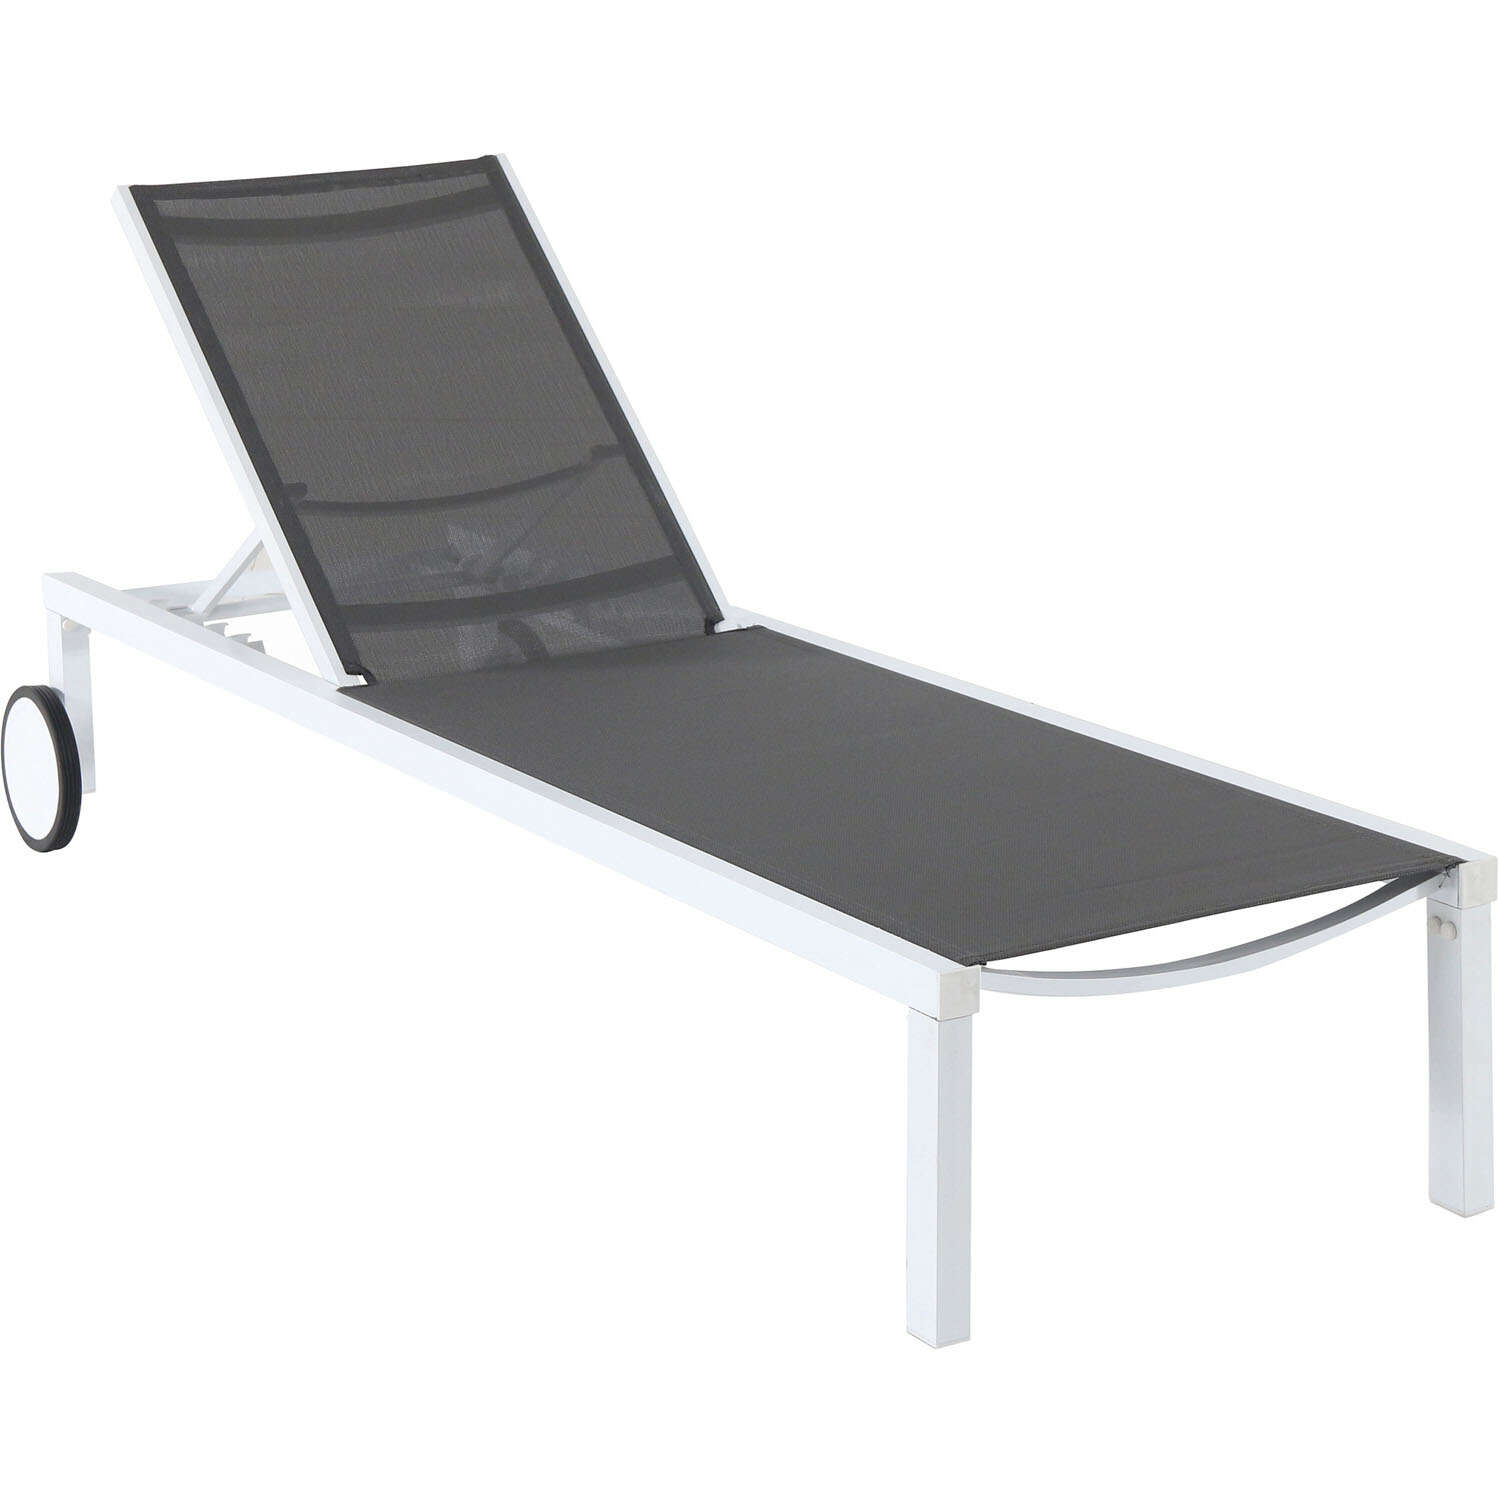 Hanover  Windham  1 pc. White  Aluminum Frame Modern  Chaise Lounge